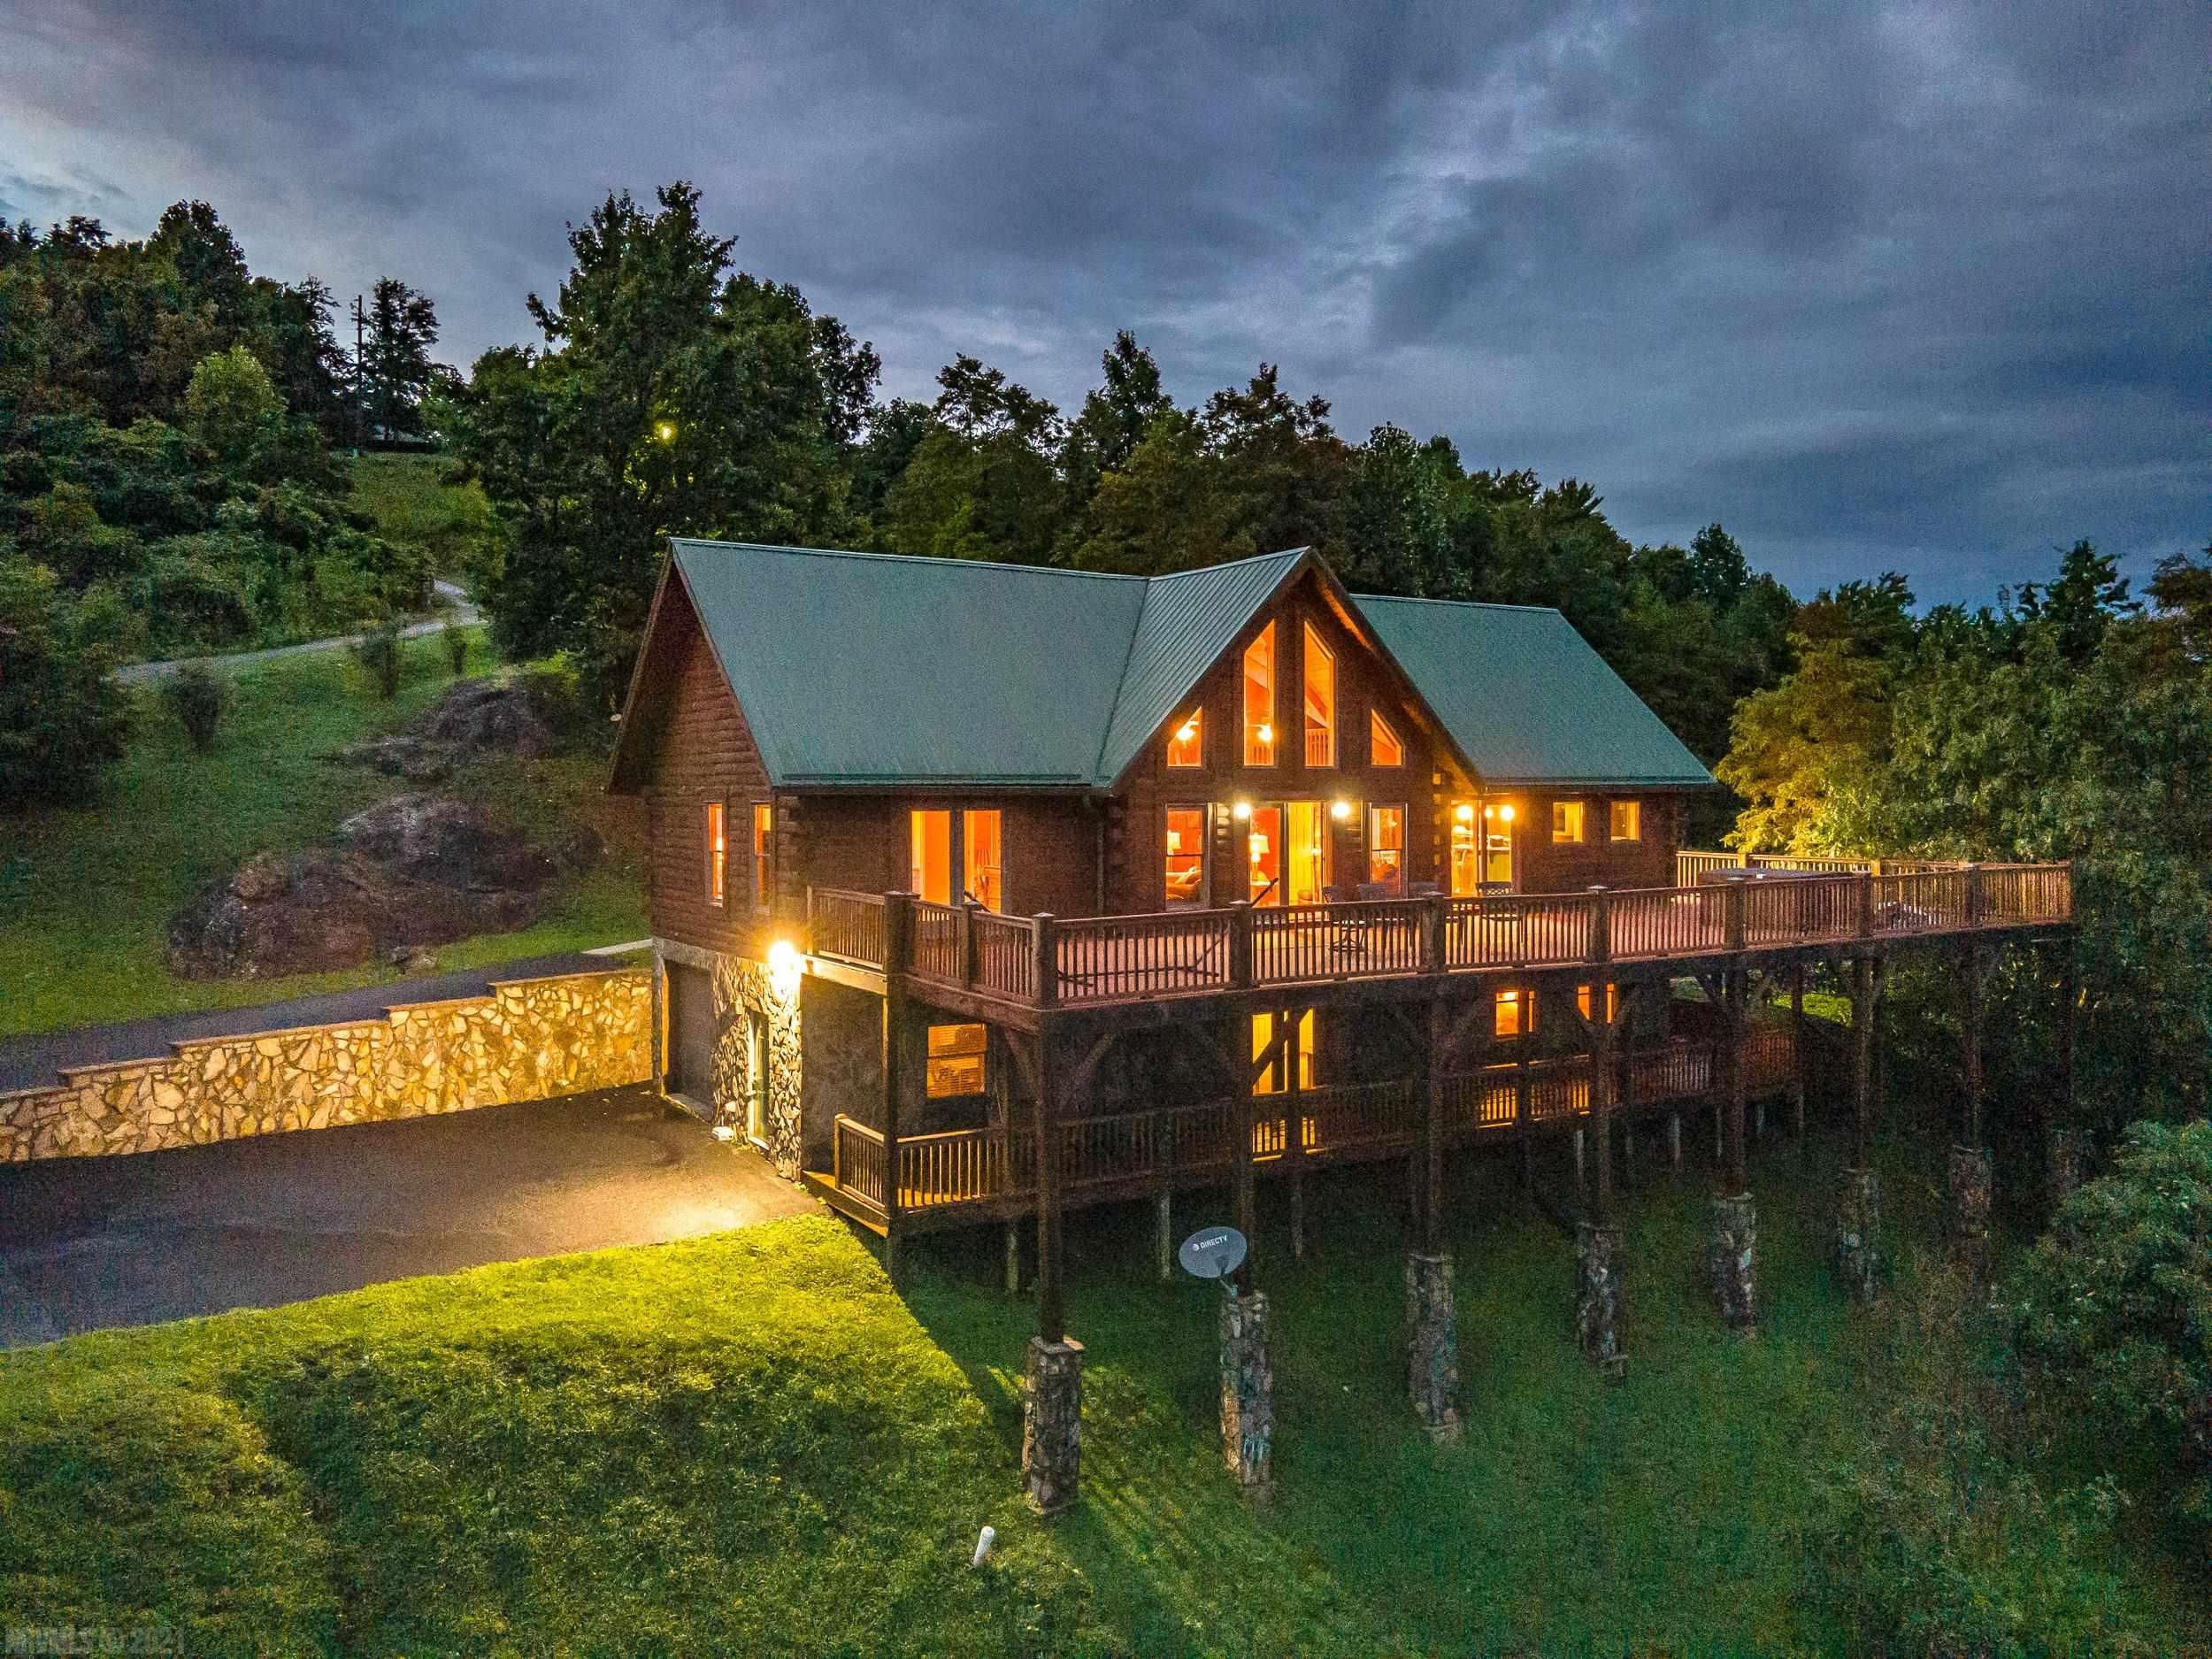 Are you looking for a log home with the best view of the Piedmont area in all of Fancy Gap? This spacious 5 bedroom cabin (including oversized loft) has a hillside design that provides expansive views throughout. Open floor plan offers living room w/gas fireplace and ceiling to floor windows with French doors leading to deck. The 70' x 22' composite top deck off the main floor provides for spacious entertaining and offers a new hot tub. Ample parking makes this home a great candidate for a vacation rental. Large laundry/mud room/pantry off of kitchen with separate entrance and separate driveway for easy access. Basement has large living room with a gas fireplace, a full bathroom and 2 bedrooms with its own 62 x 10 deck, and an attached garage. The home has a whole house generator as well. The home is located minutes off the Blue Ridge Parkway, and is at the edge of the subdivision. Come enjoy the abundance of serene nature and this spectacular view!